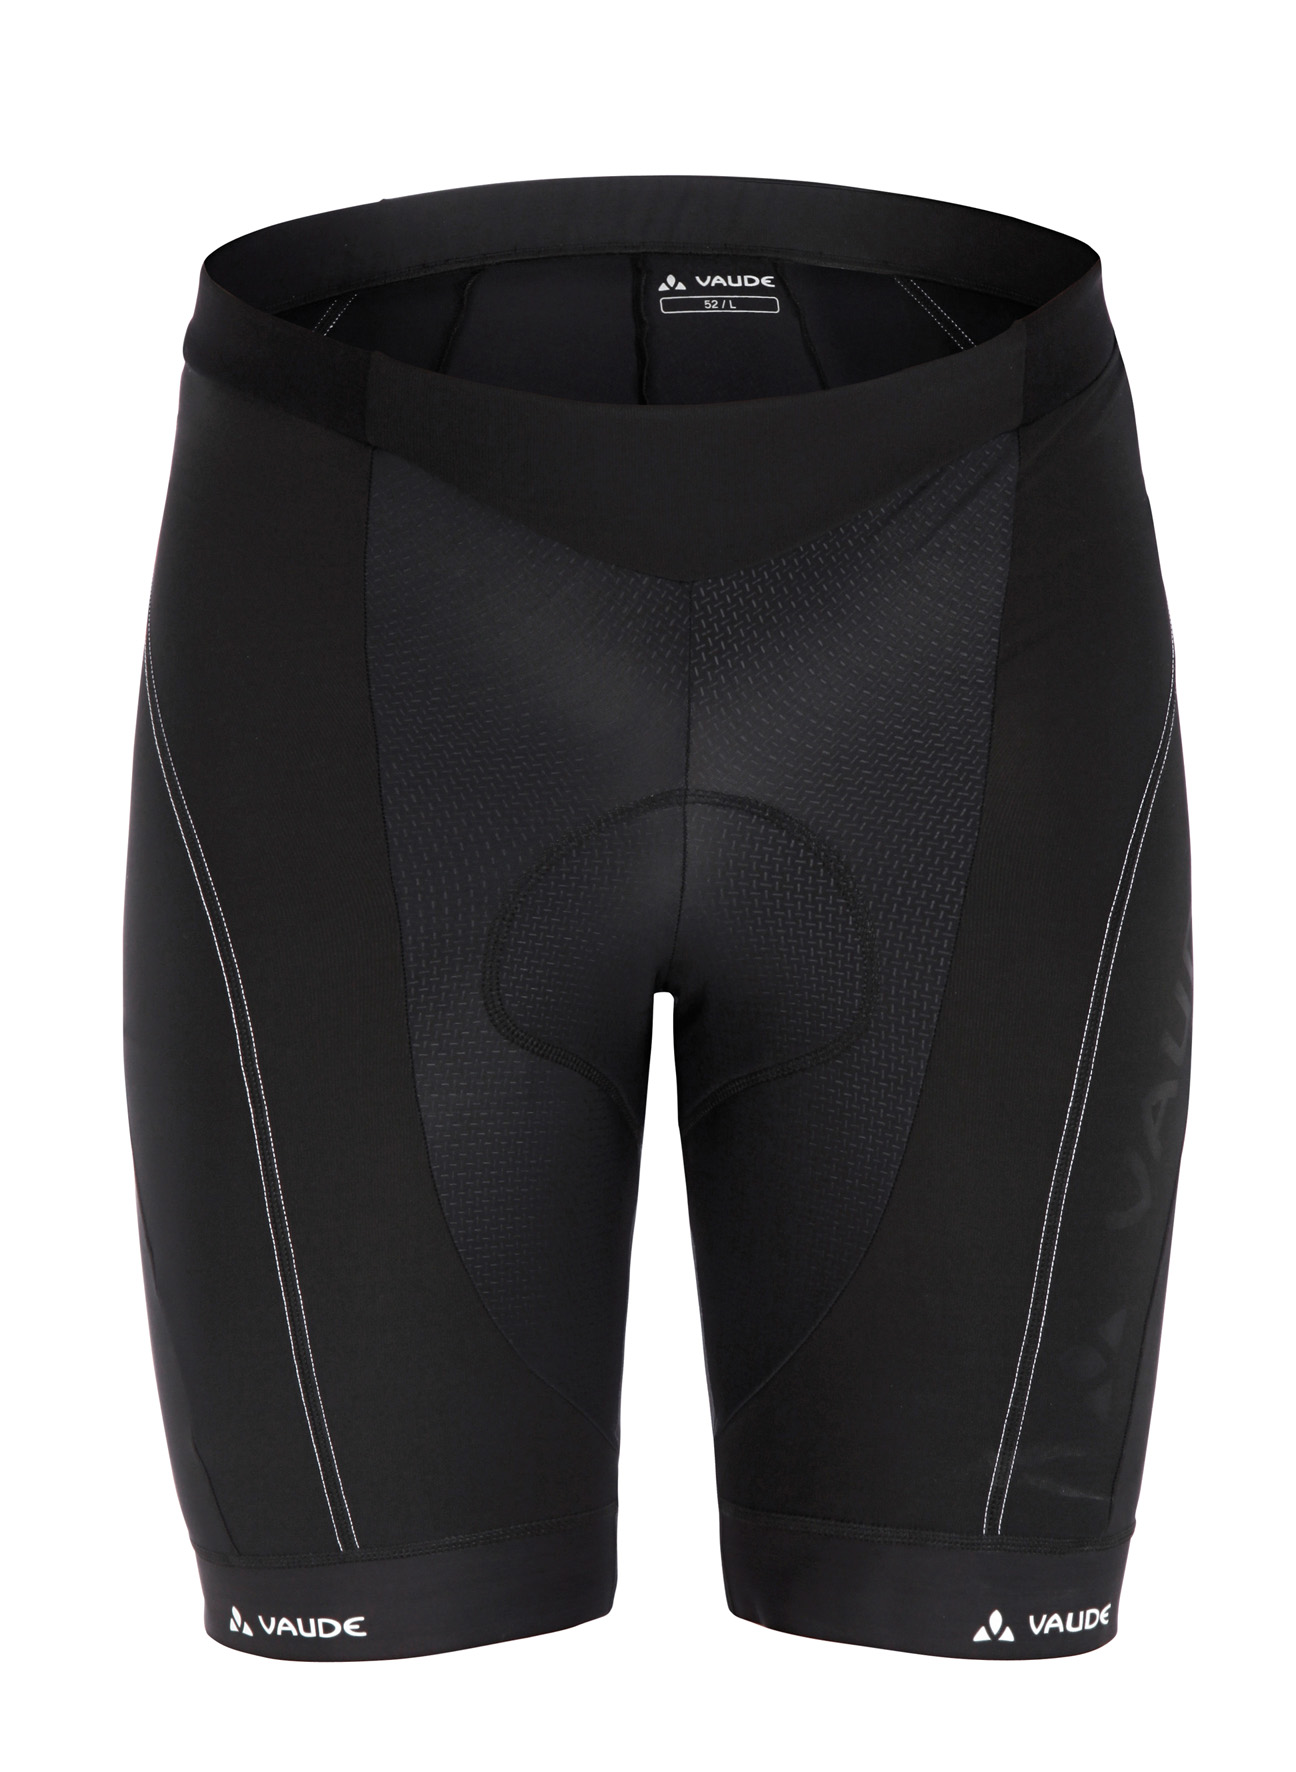 VAUDE Men´s Pro Pants black Größe XXL - schneider-sports